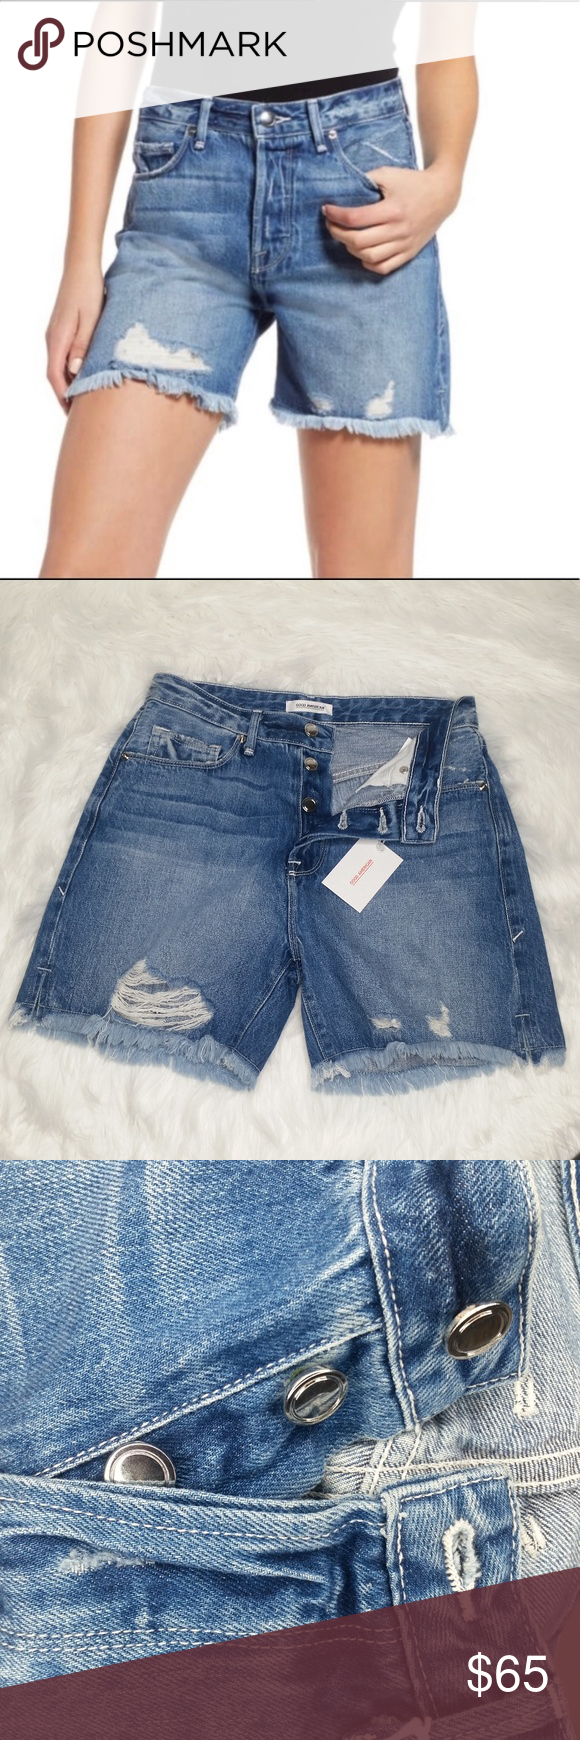 GOOD AMERICAN Cutoff High Waist Denim Shorts Beautiful pair from Good American. These are High waist distressed denim cutoff shorts from Good American. 4 Button fly, frayed hem, distressed, high Waist. The New Shorts with Side Slits. Size: 8/29 Inseam: 5 inches Rise: 12 inches 100% Cotton Brand New with tags. MSRP 129 + tax Good American Shorts Jean Shorts #denimcutoffshorts